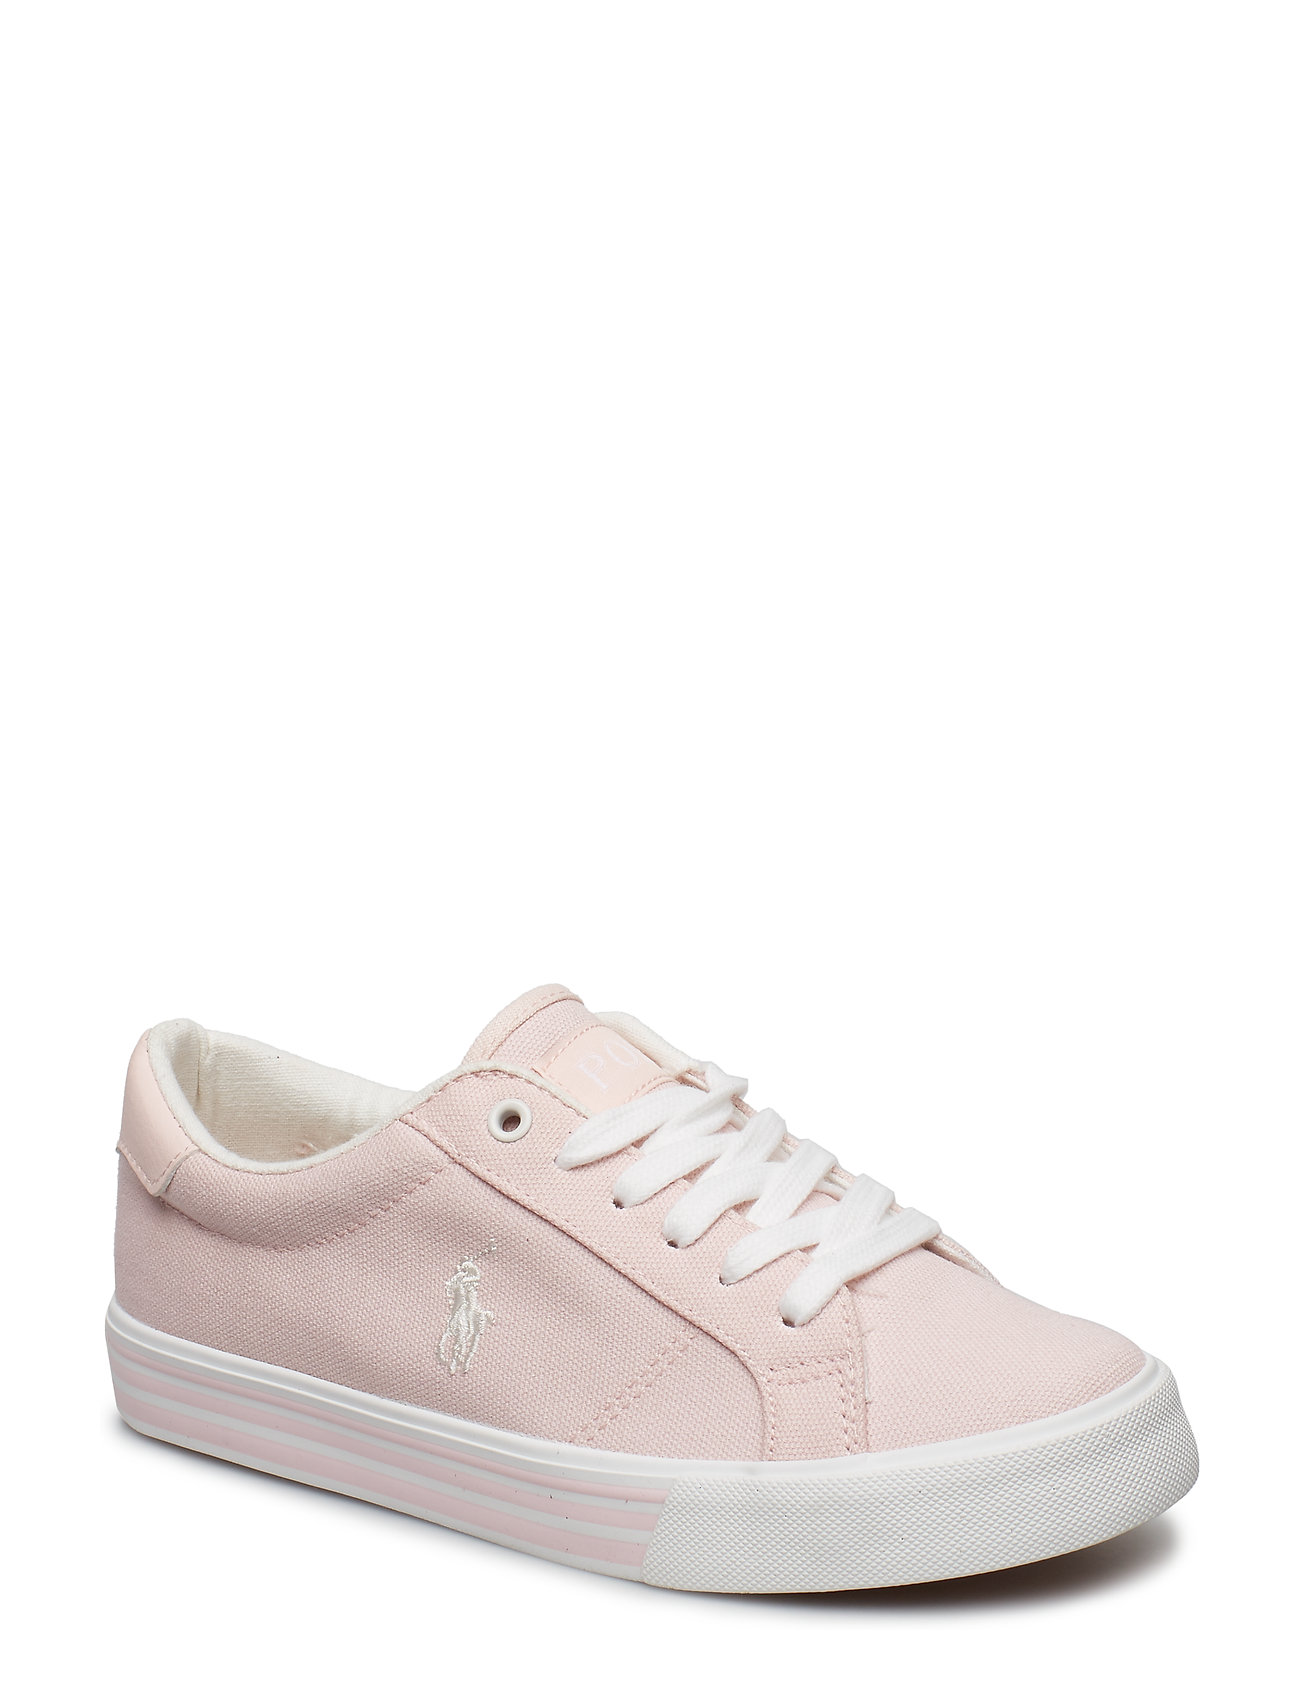 Ralph Lauren Kids EDGEWOOD - LIGHT PINK CANVAS W/PAPERWHITE PP